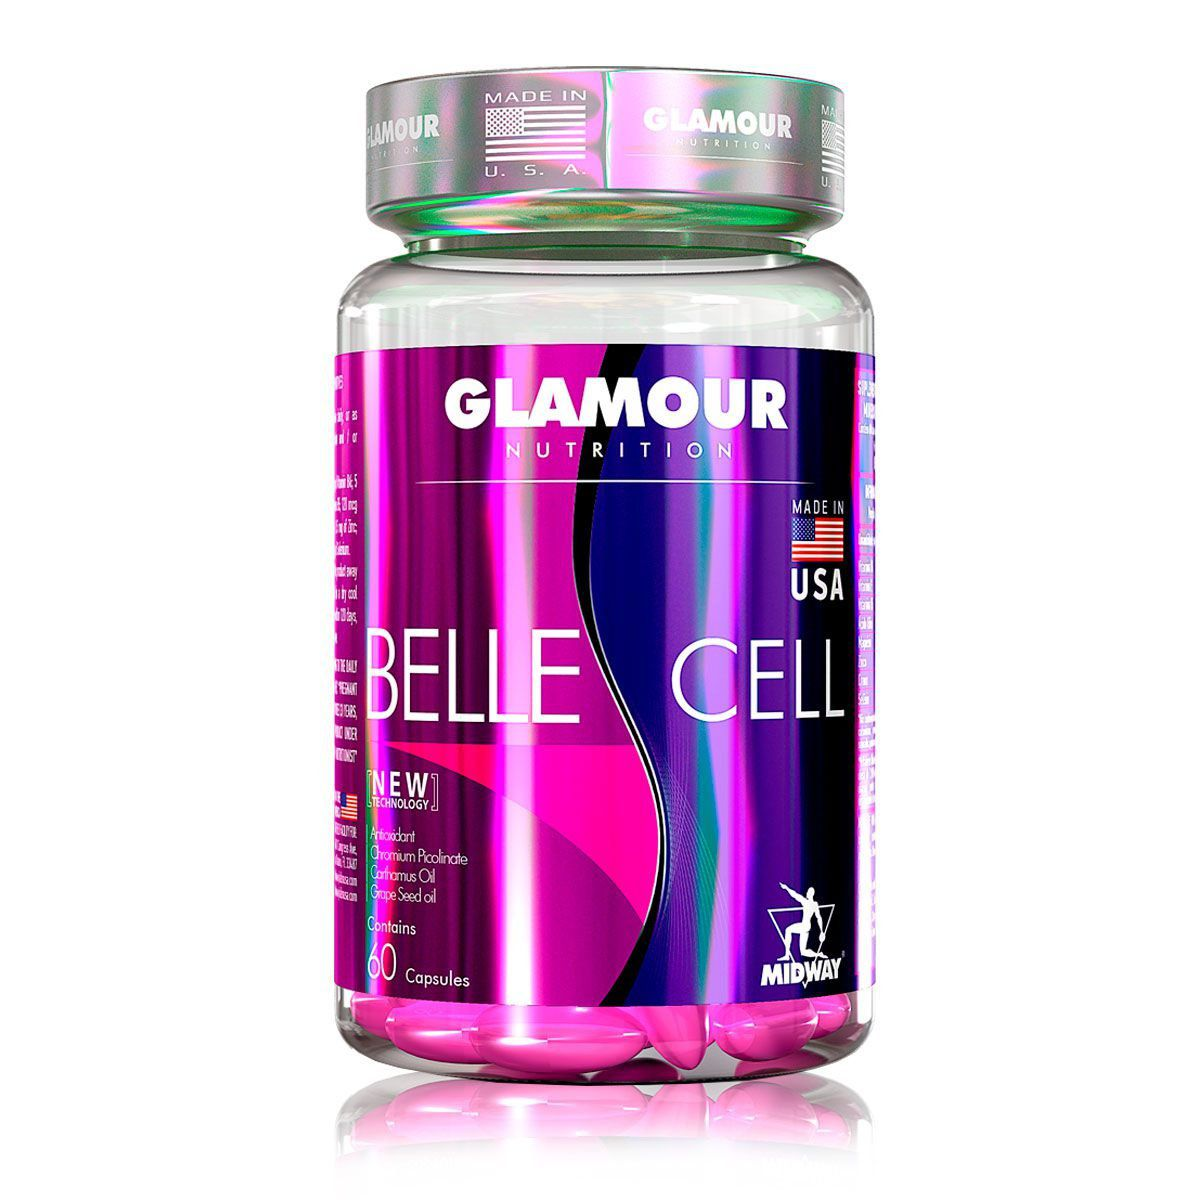 Belle Cell 60 Caps Glamour Nutrition - Midway